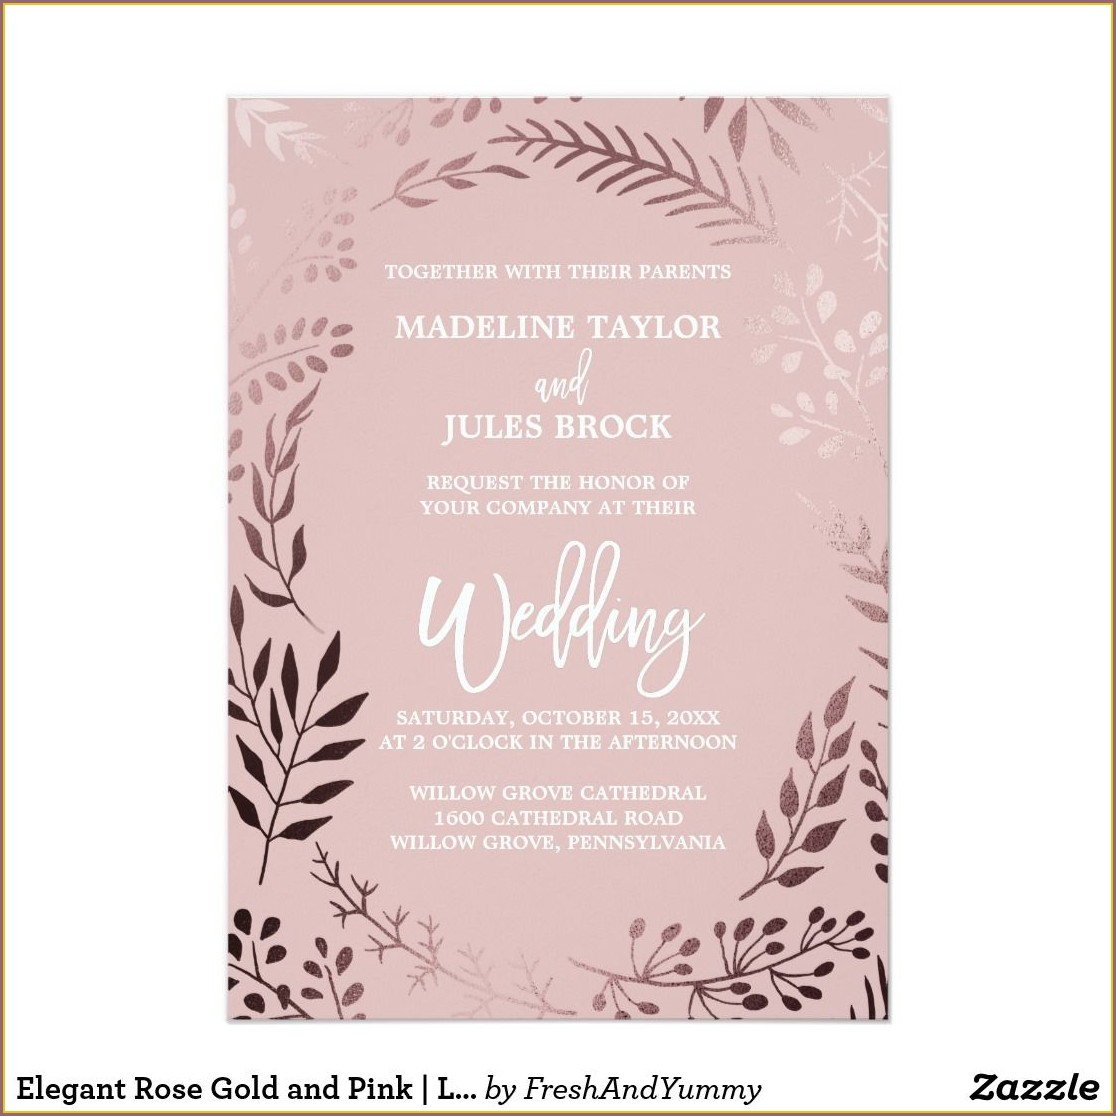 Elegant Rose Gold Wedding Invitation Background